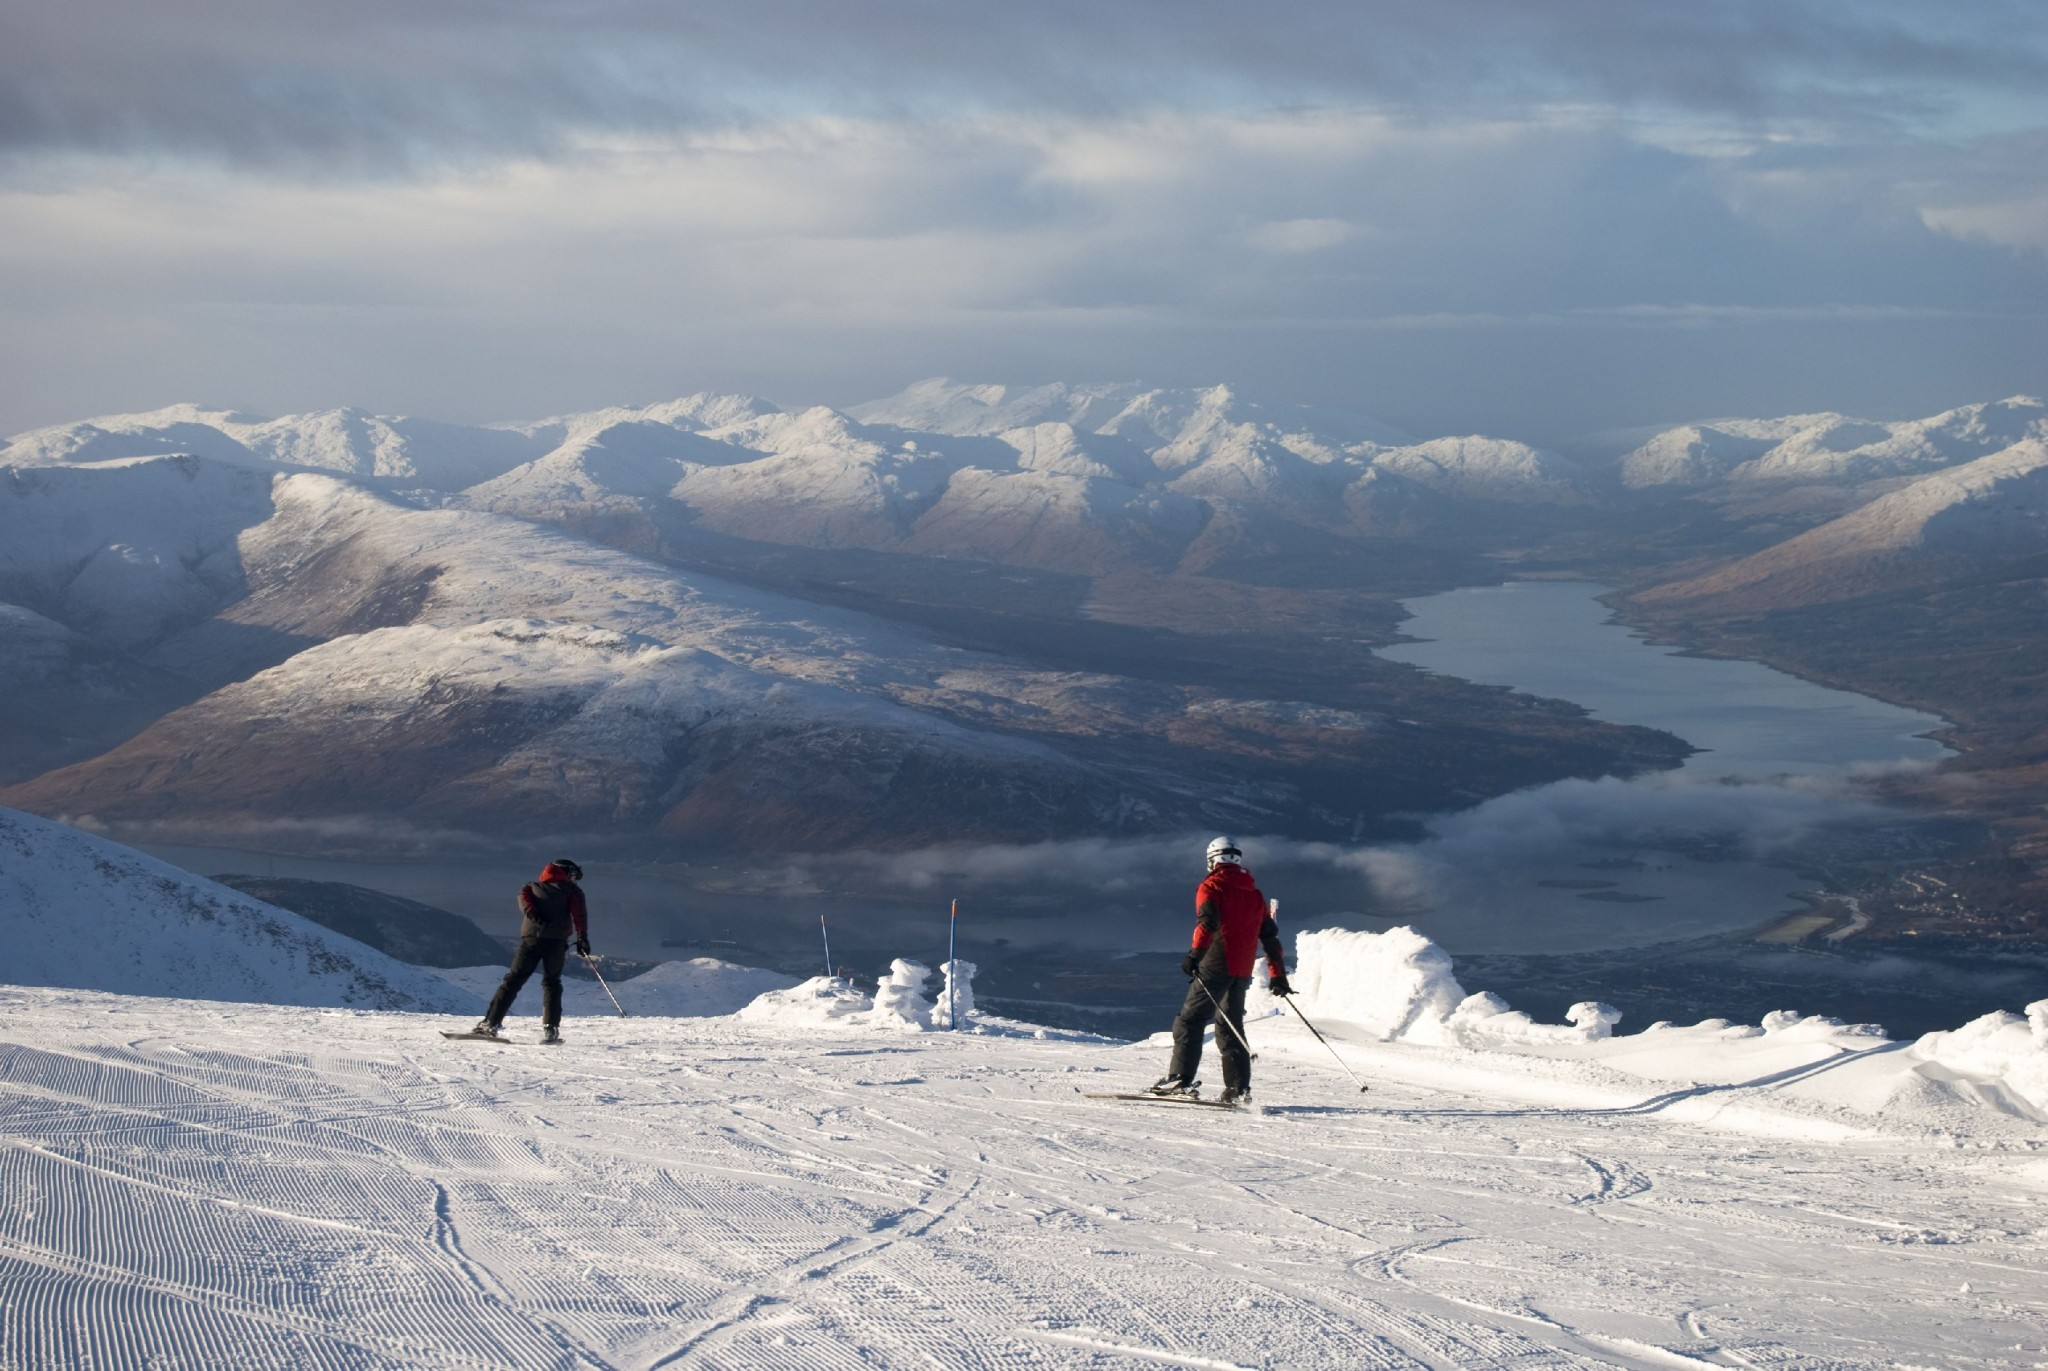 skiing in scotland - where and how to ski in scotland